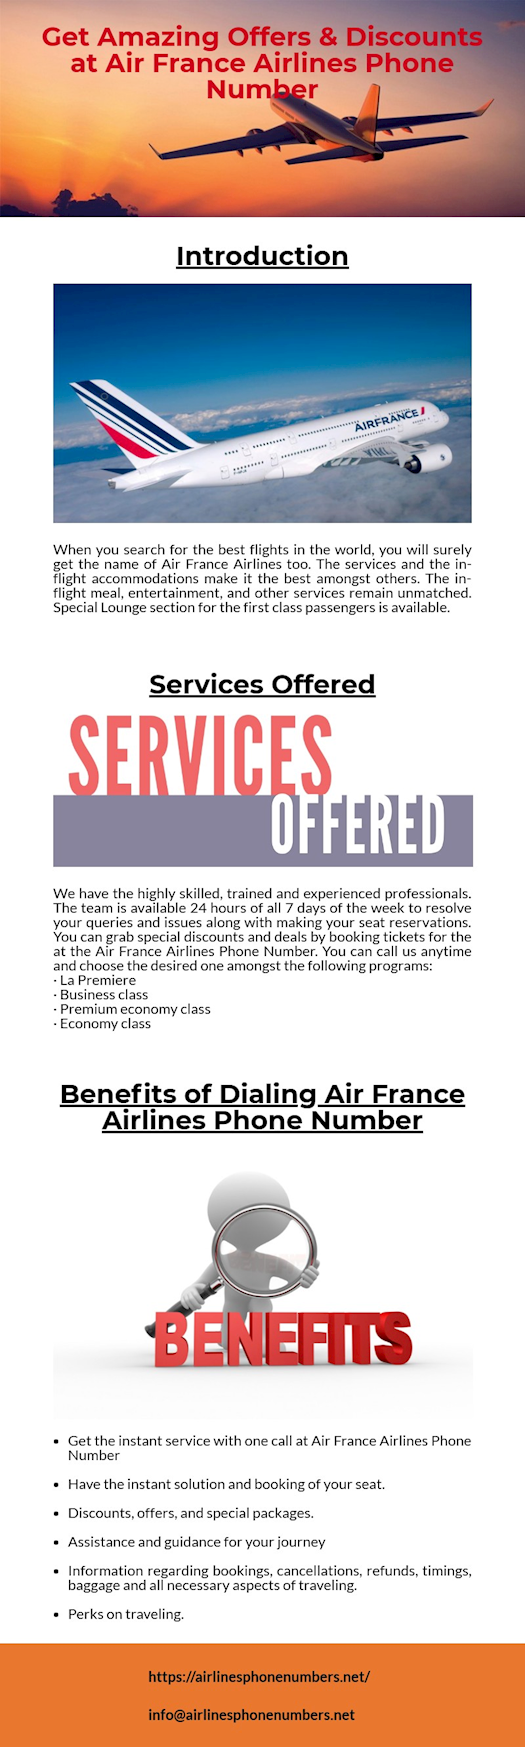 Get High Discounts on Tickets at Air France Airlines Phone Number